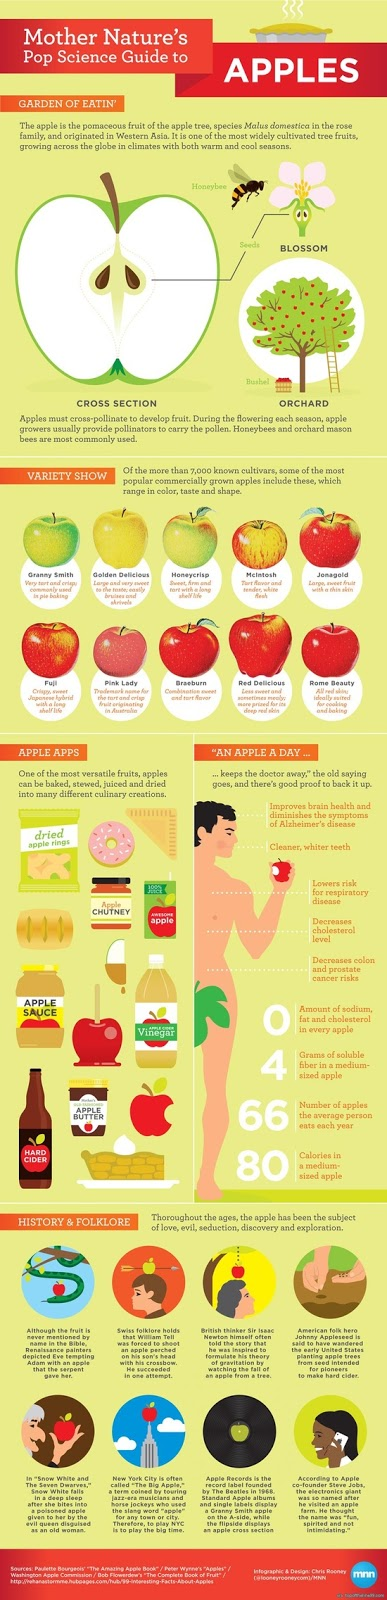 Pop Science Guide to Apples